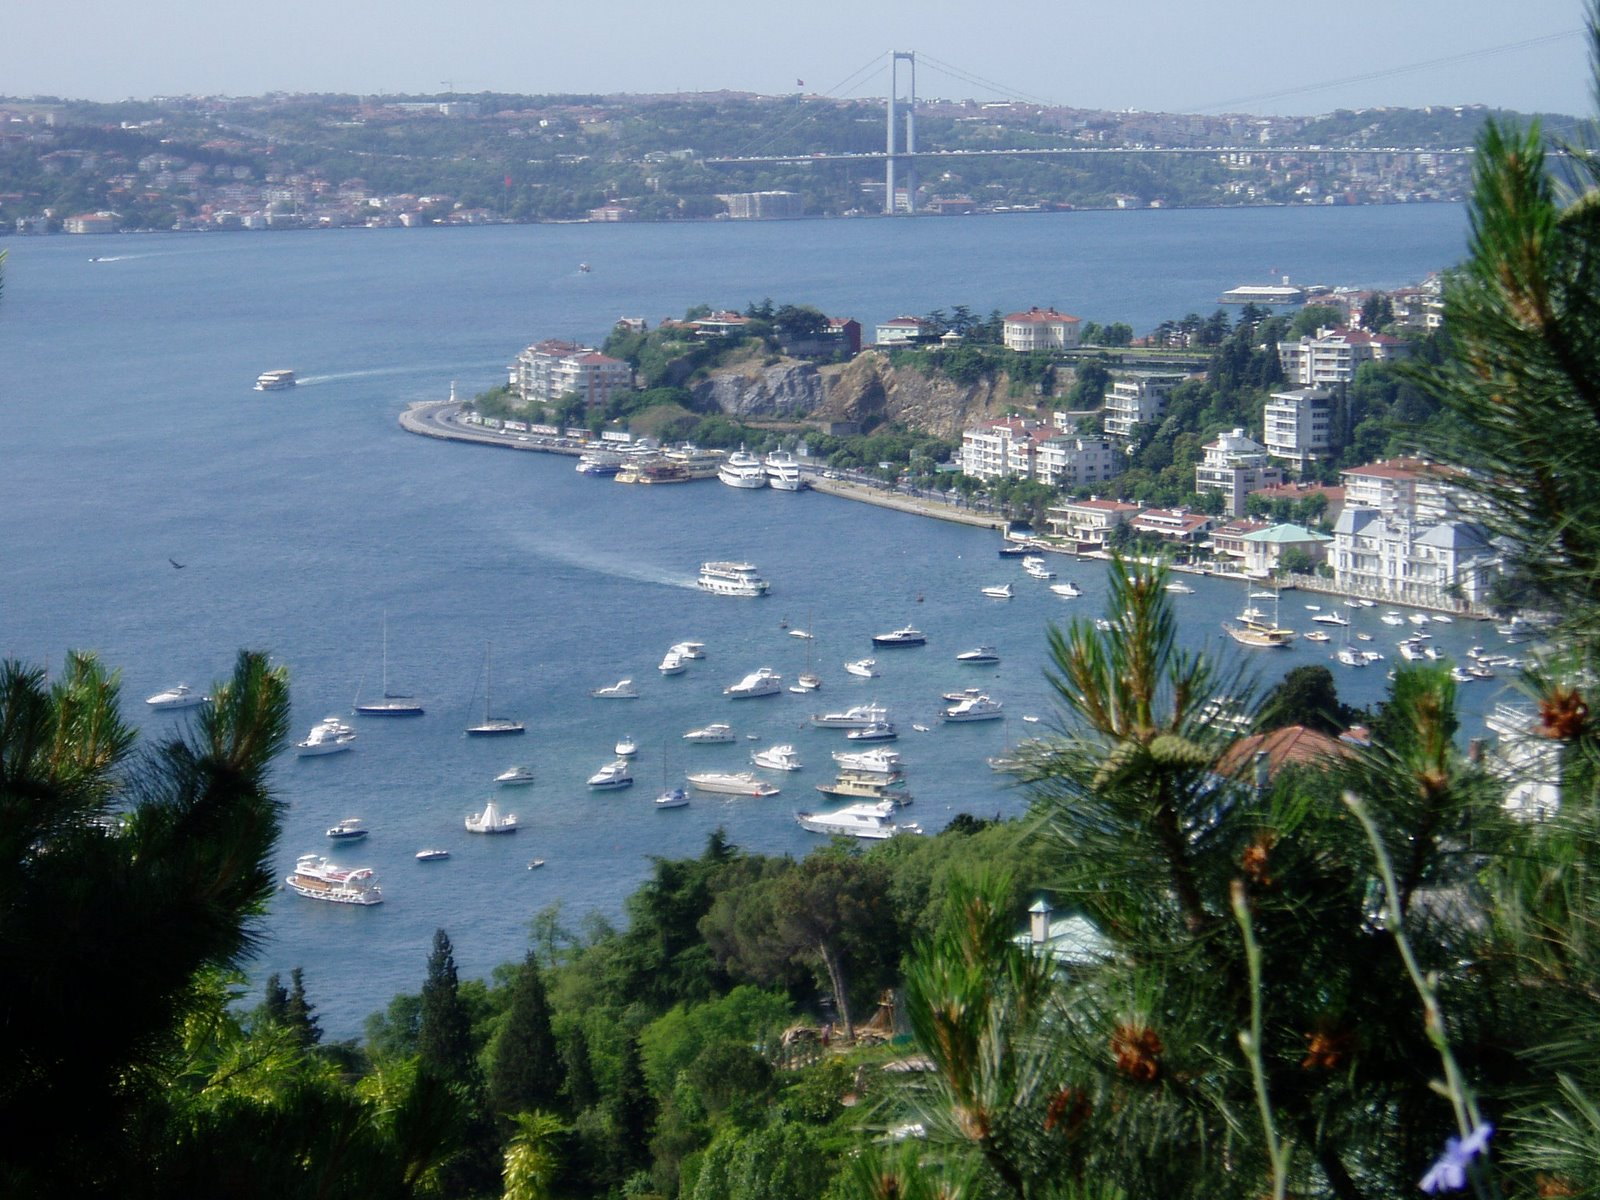 Top Ten: Top Ten Things to do in Istanbul